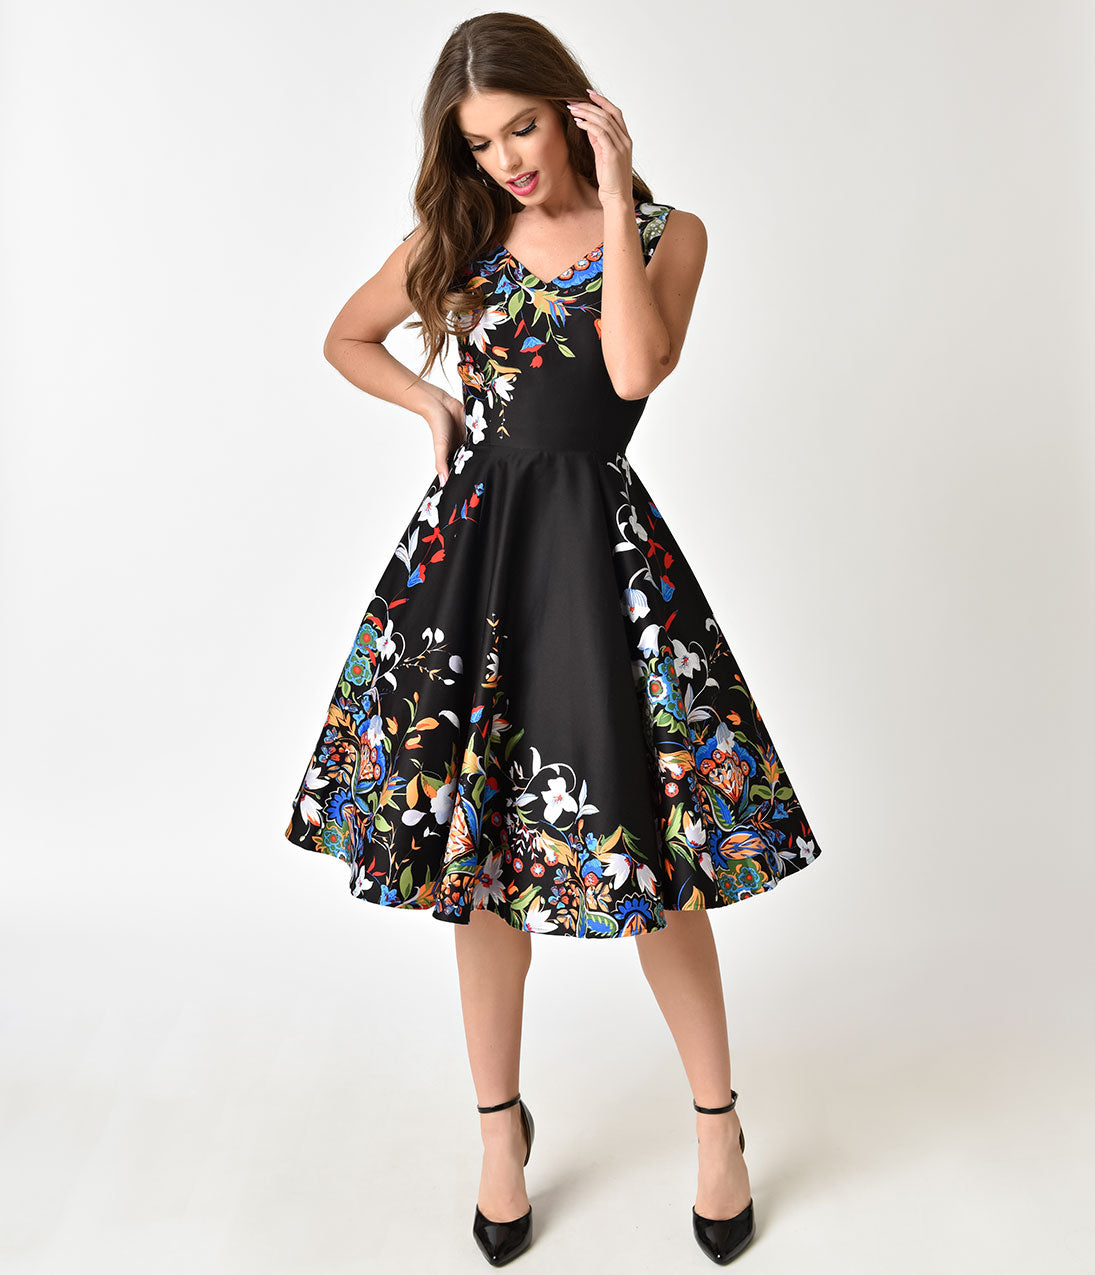 1950s Swing Dresses | 50s Swing Dress Black Double Border Floral Print Cotton Swing Dress $78.00 AT vintagedancer.com